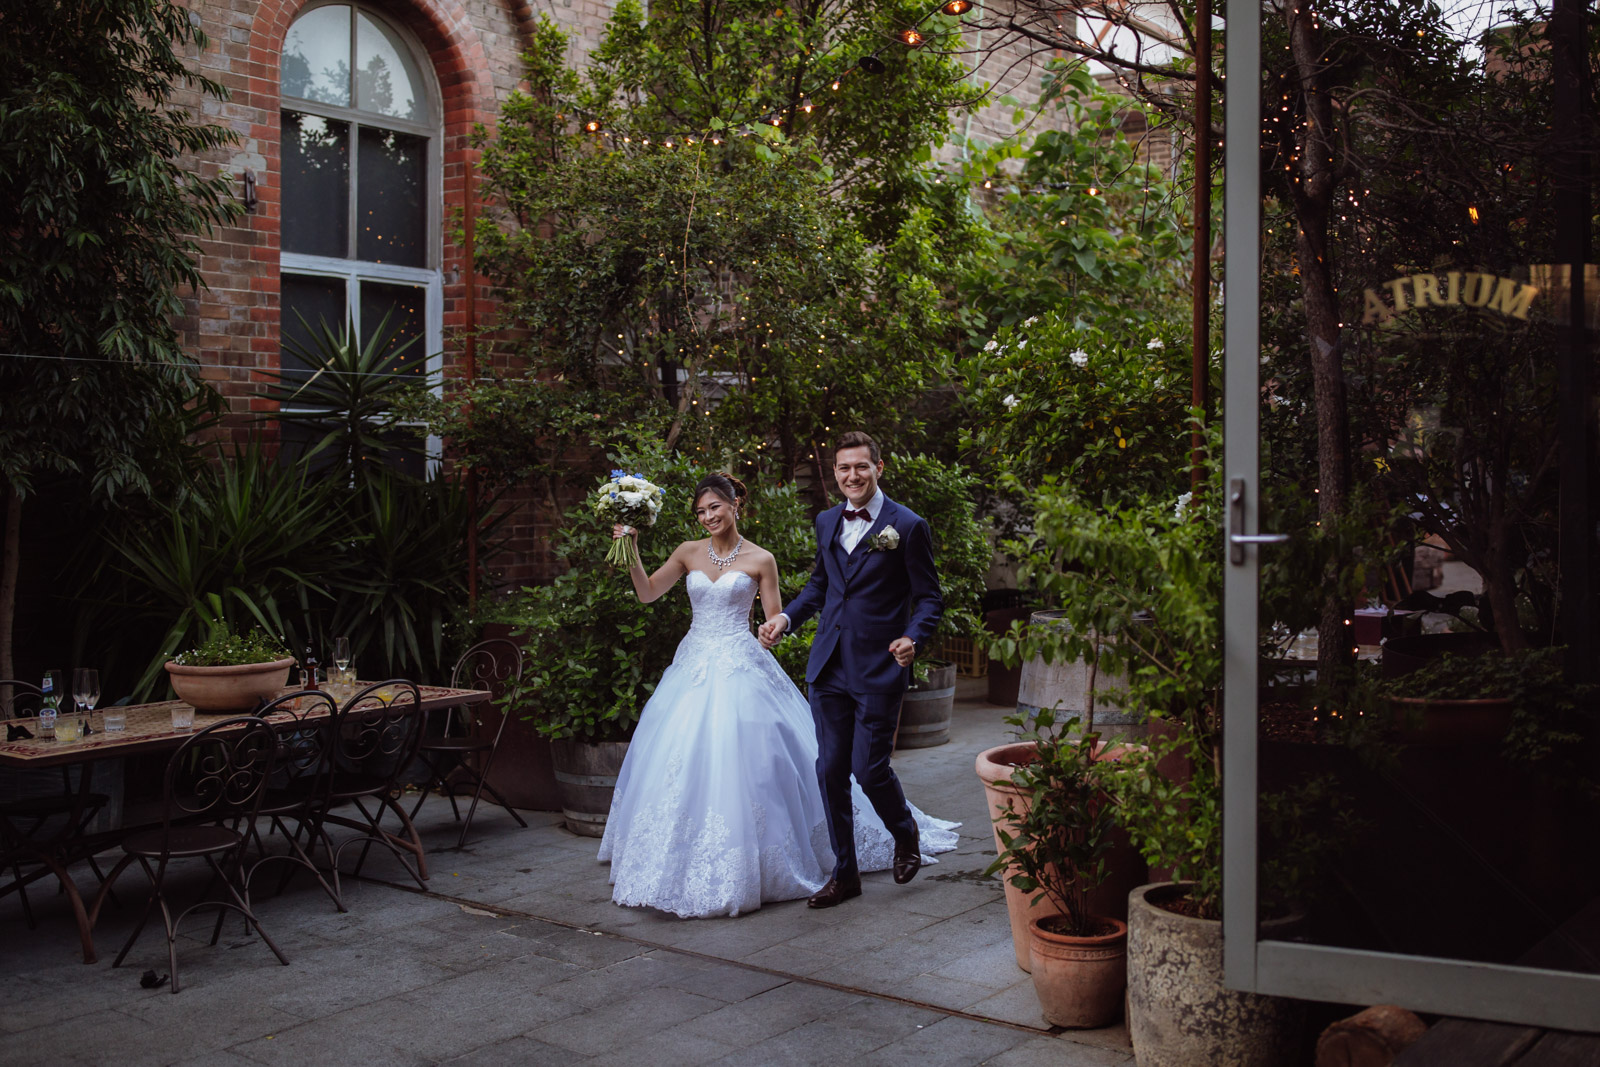 "A man and woman walking holding hands, smiling. The woman is wearing a white wedding ballgown and the man is wearing a navy blue suit. In the background is a wooden table with some ornate metal chairs. The table has some wine glasses on them. In the background is a building and a lot of pot plants, large and small. In the foreground is an open glass door reading ""The Atrium""."